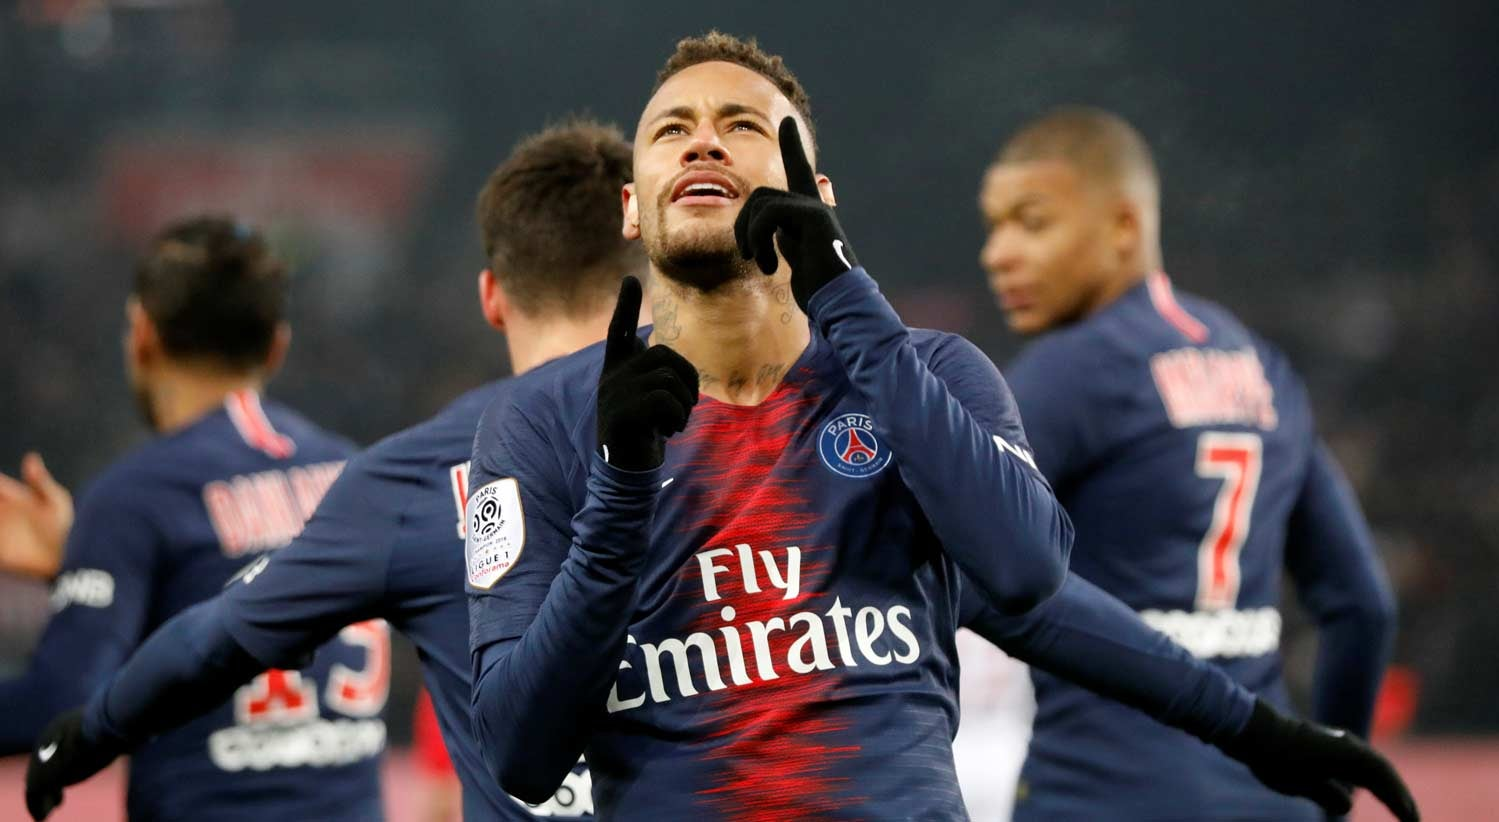 Paris Saint-Germain bate recorde ao golear Guingamp por 9-0